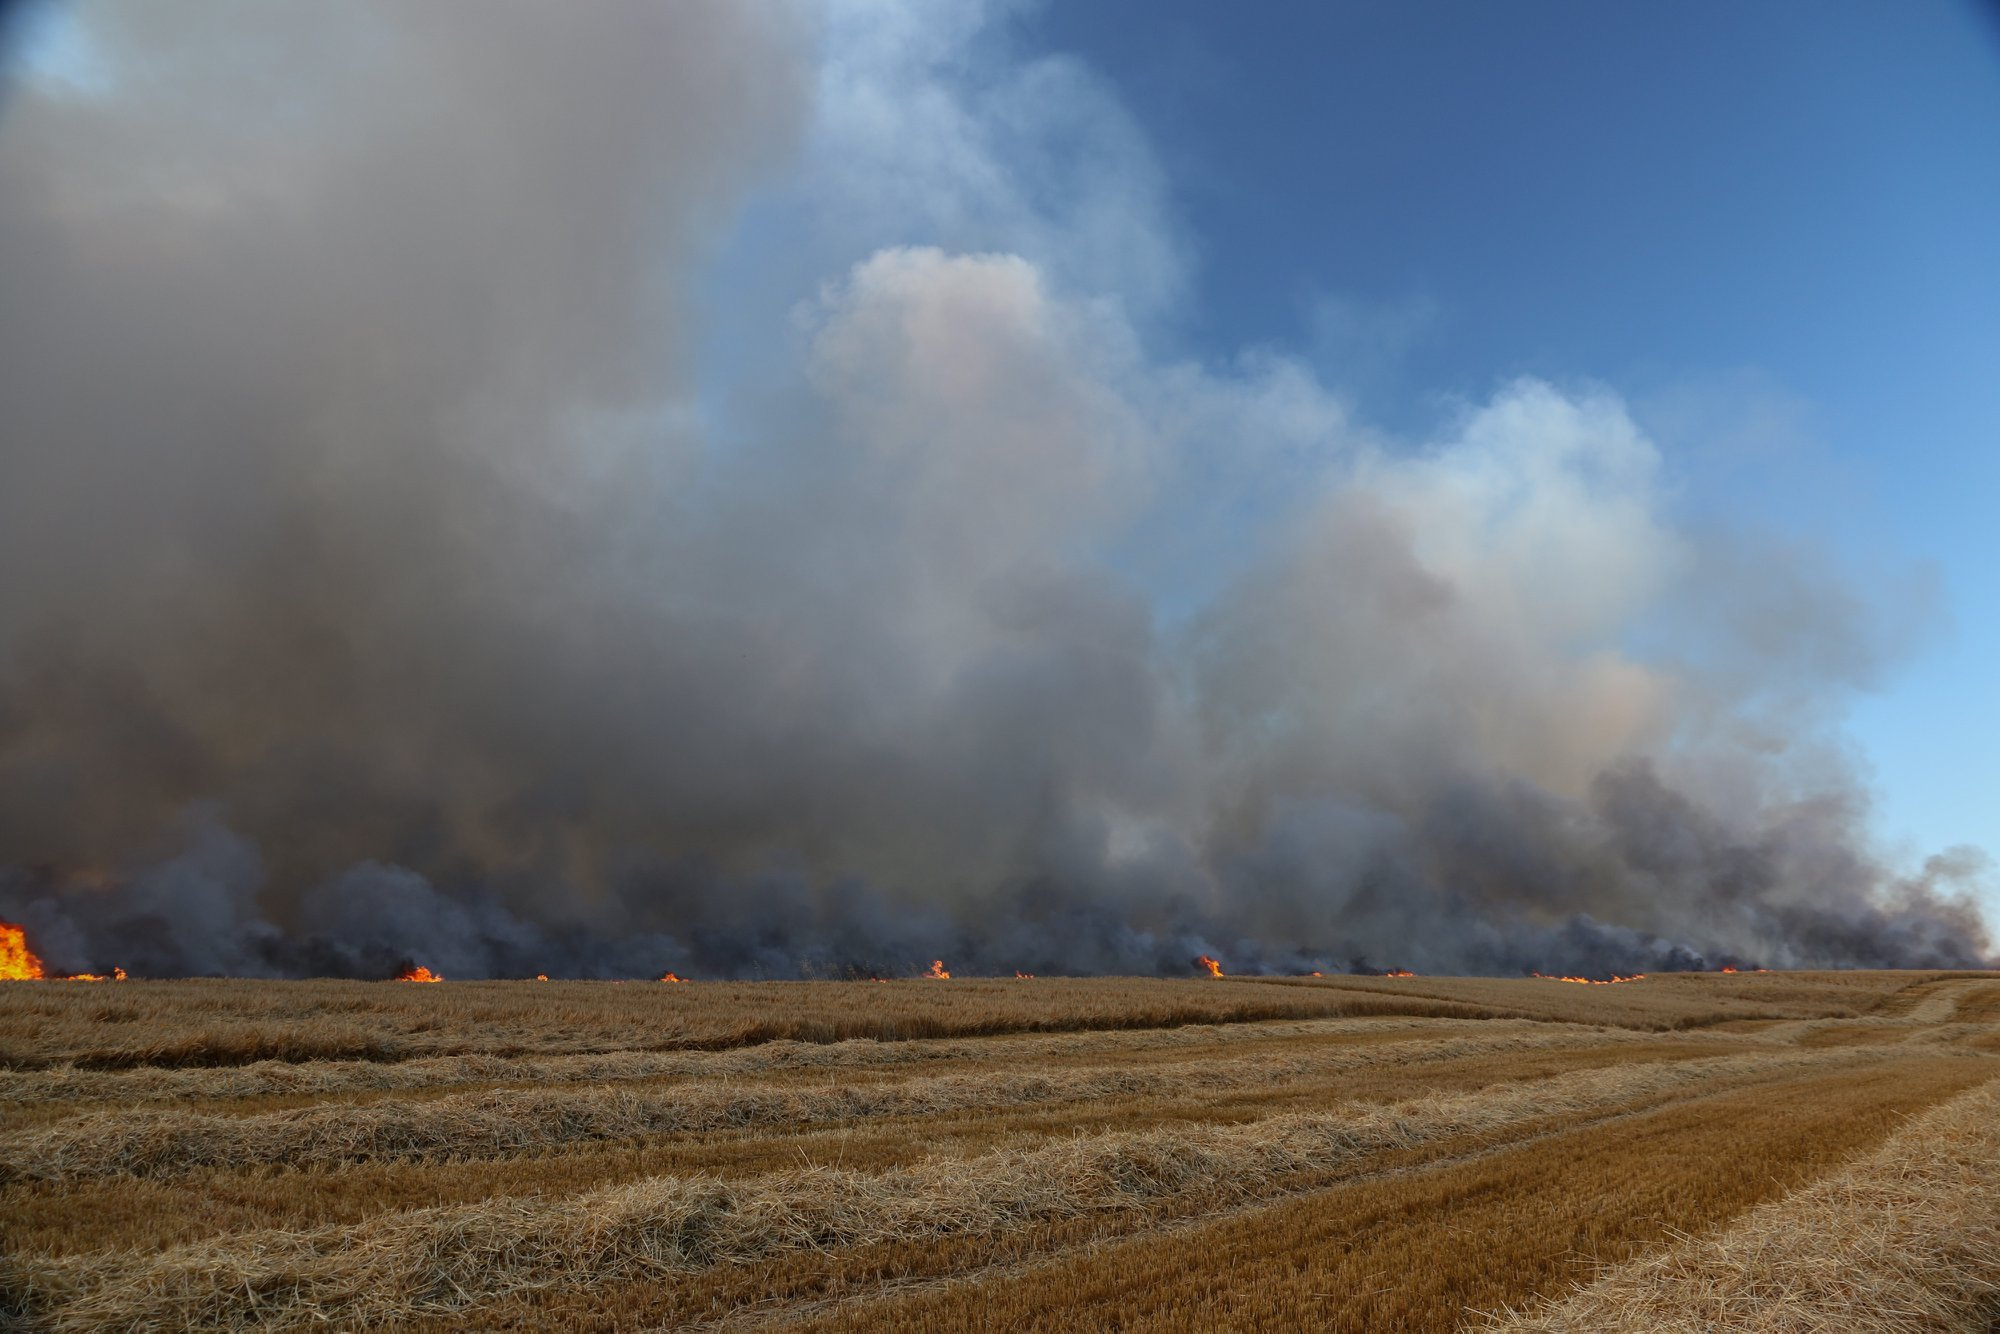 A farmland fire earlier this week near Inkberrow. Photo: Paul Wilde